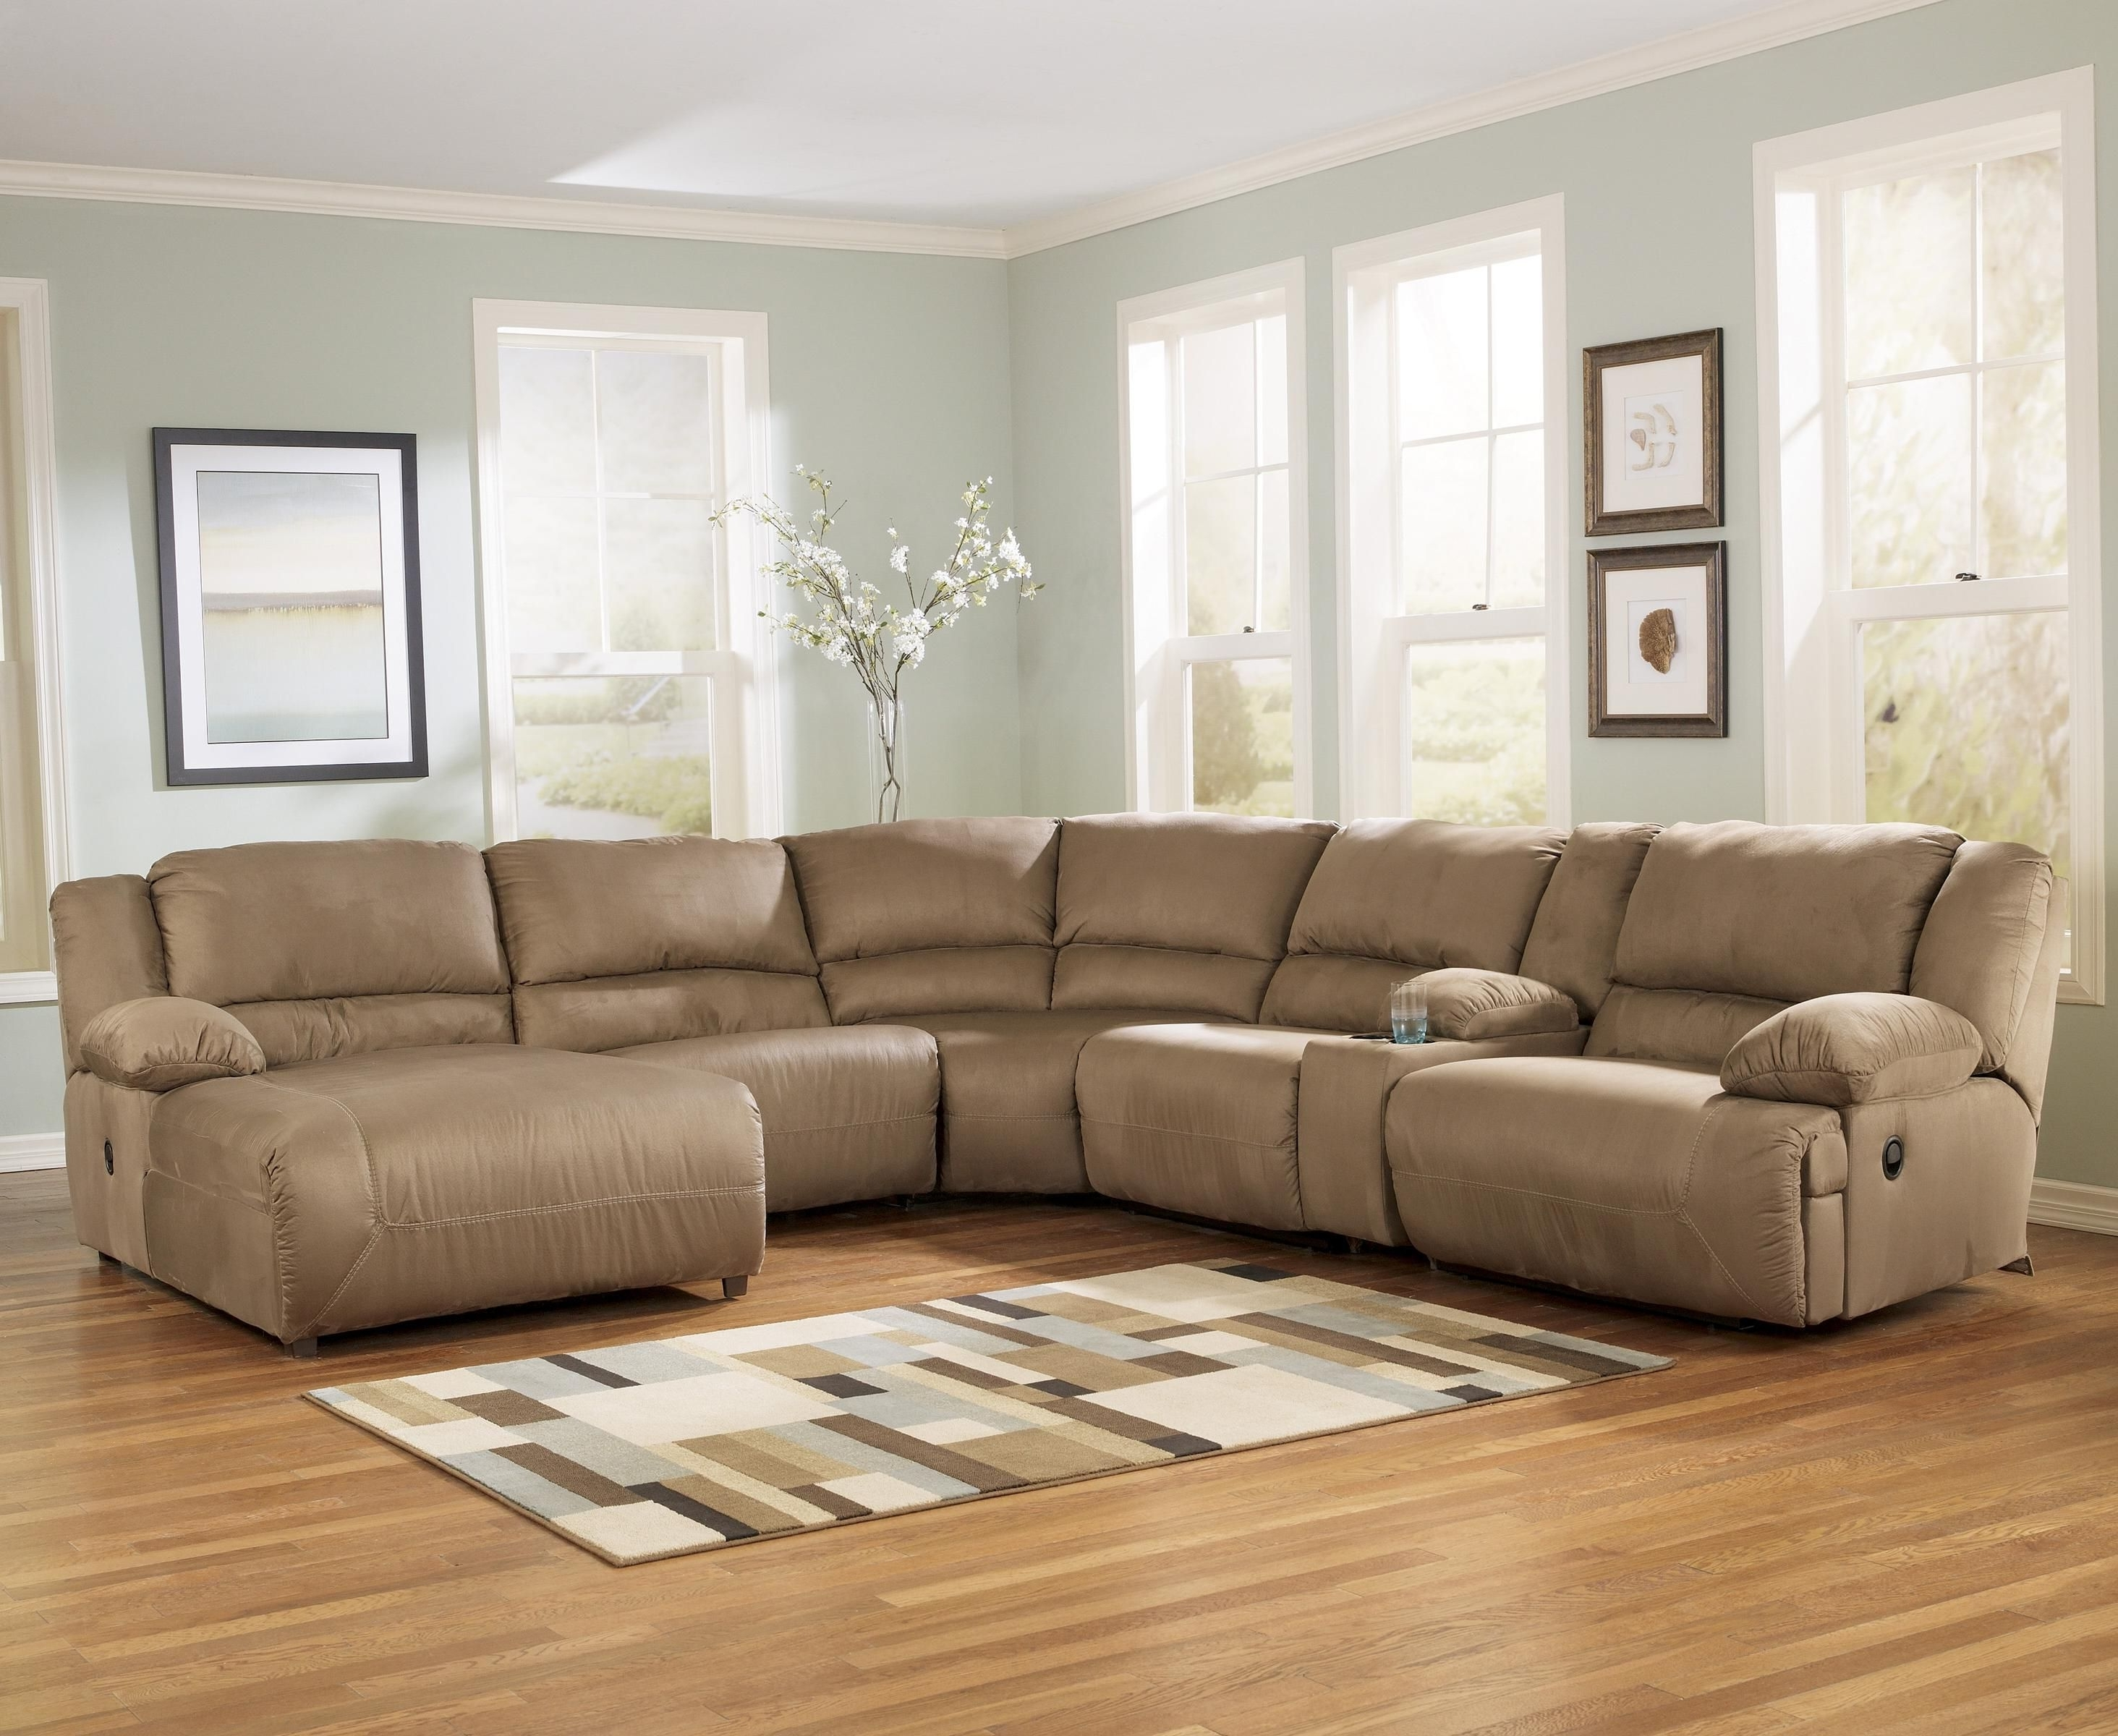 Hogan – Mocha 6 Piece Motion Sectional With Right Chaise And For Popular St Cloud Mn Sectional Sofas (View 5 of 20)